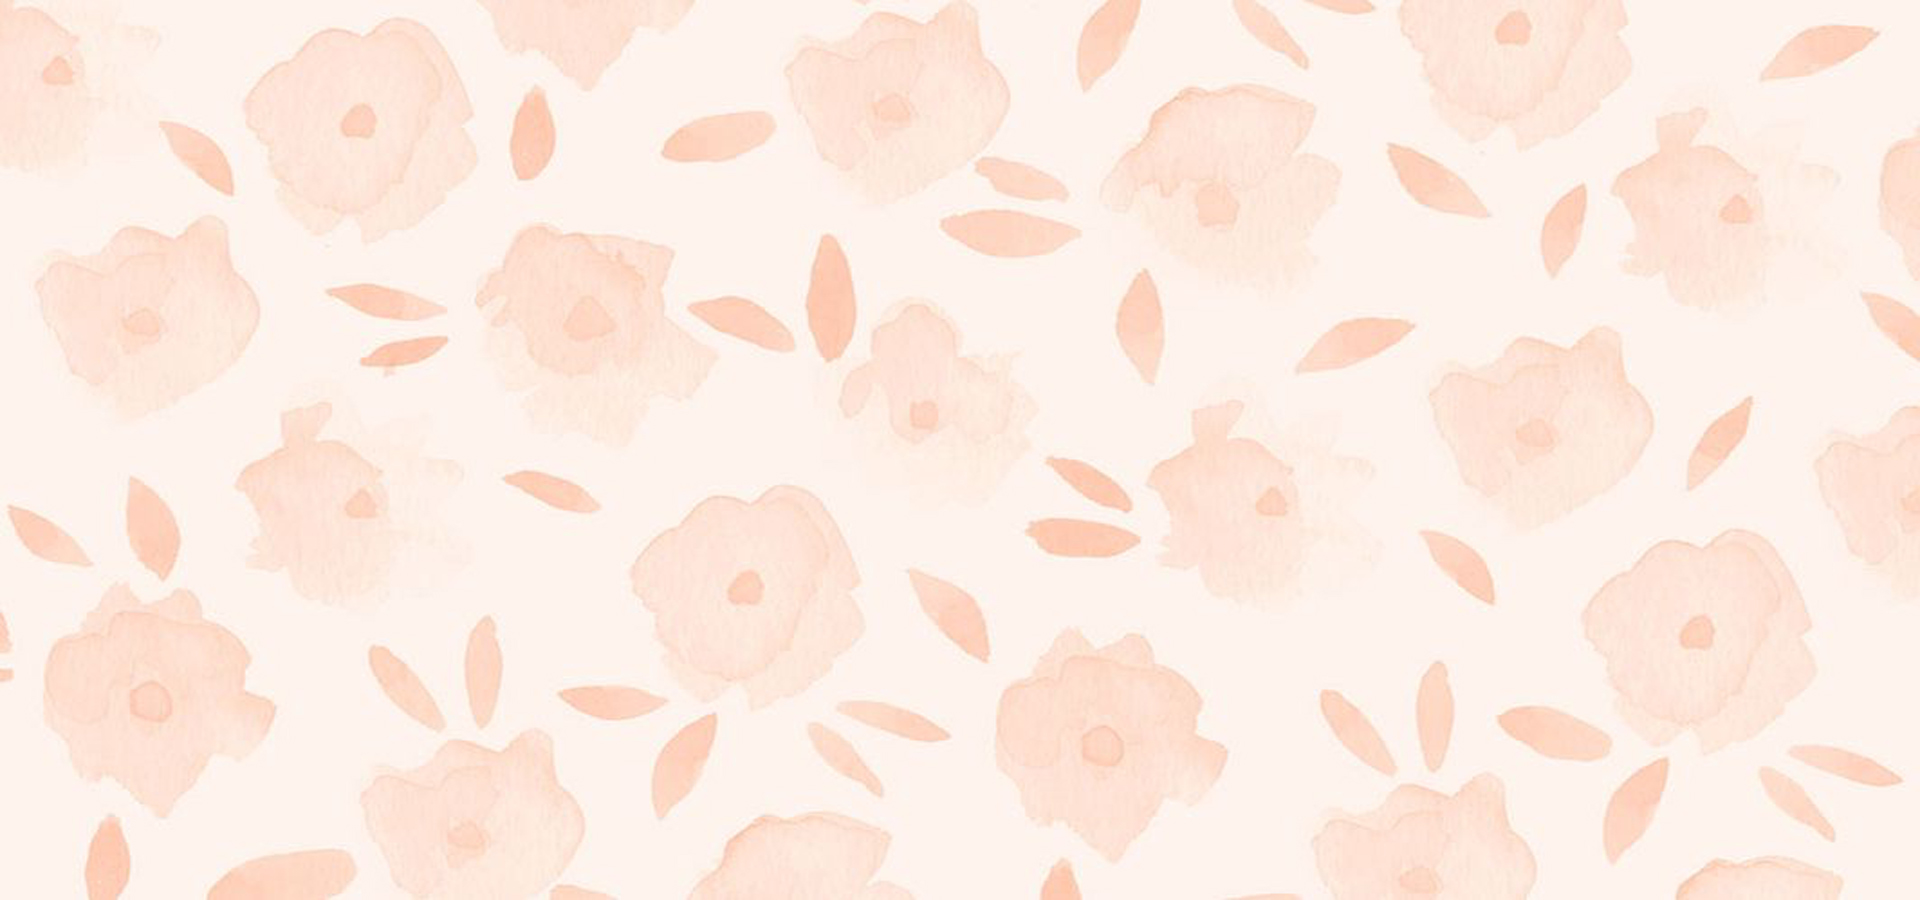 Fondo De Flores De Color Rosa Pastel: Pastel Pink Flowers Background, Pink, Flowers, Watercolor